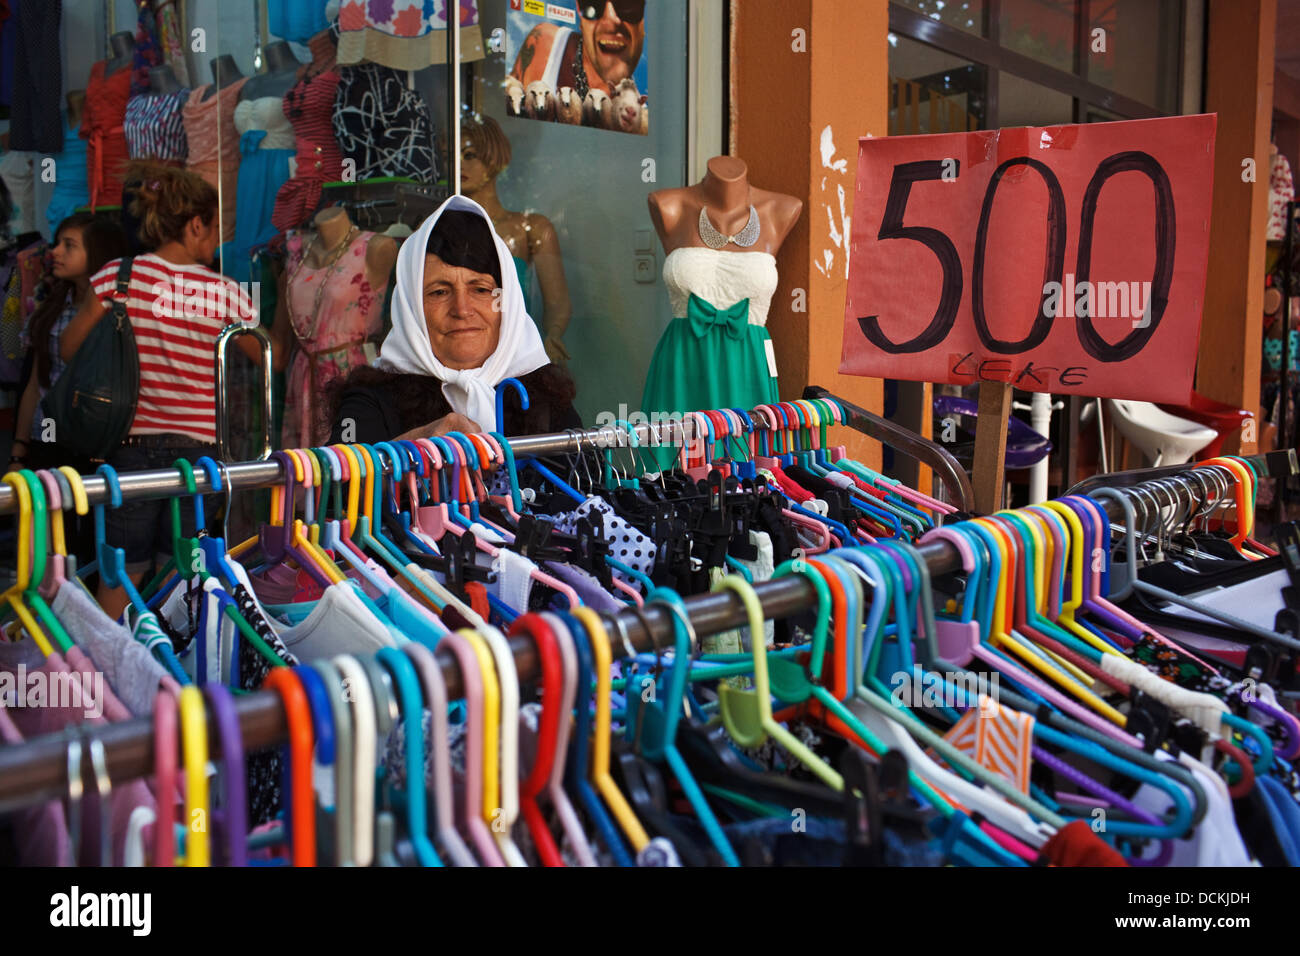 A woman shops for clothes in a clothing shop in Shkodra, Albania - Stock Image